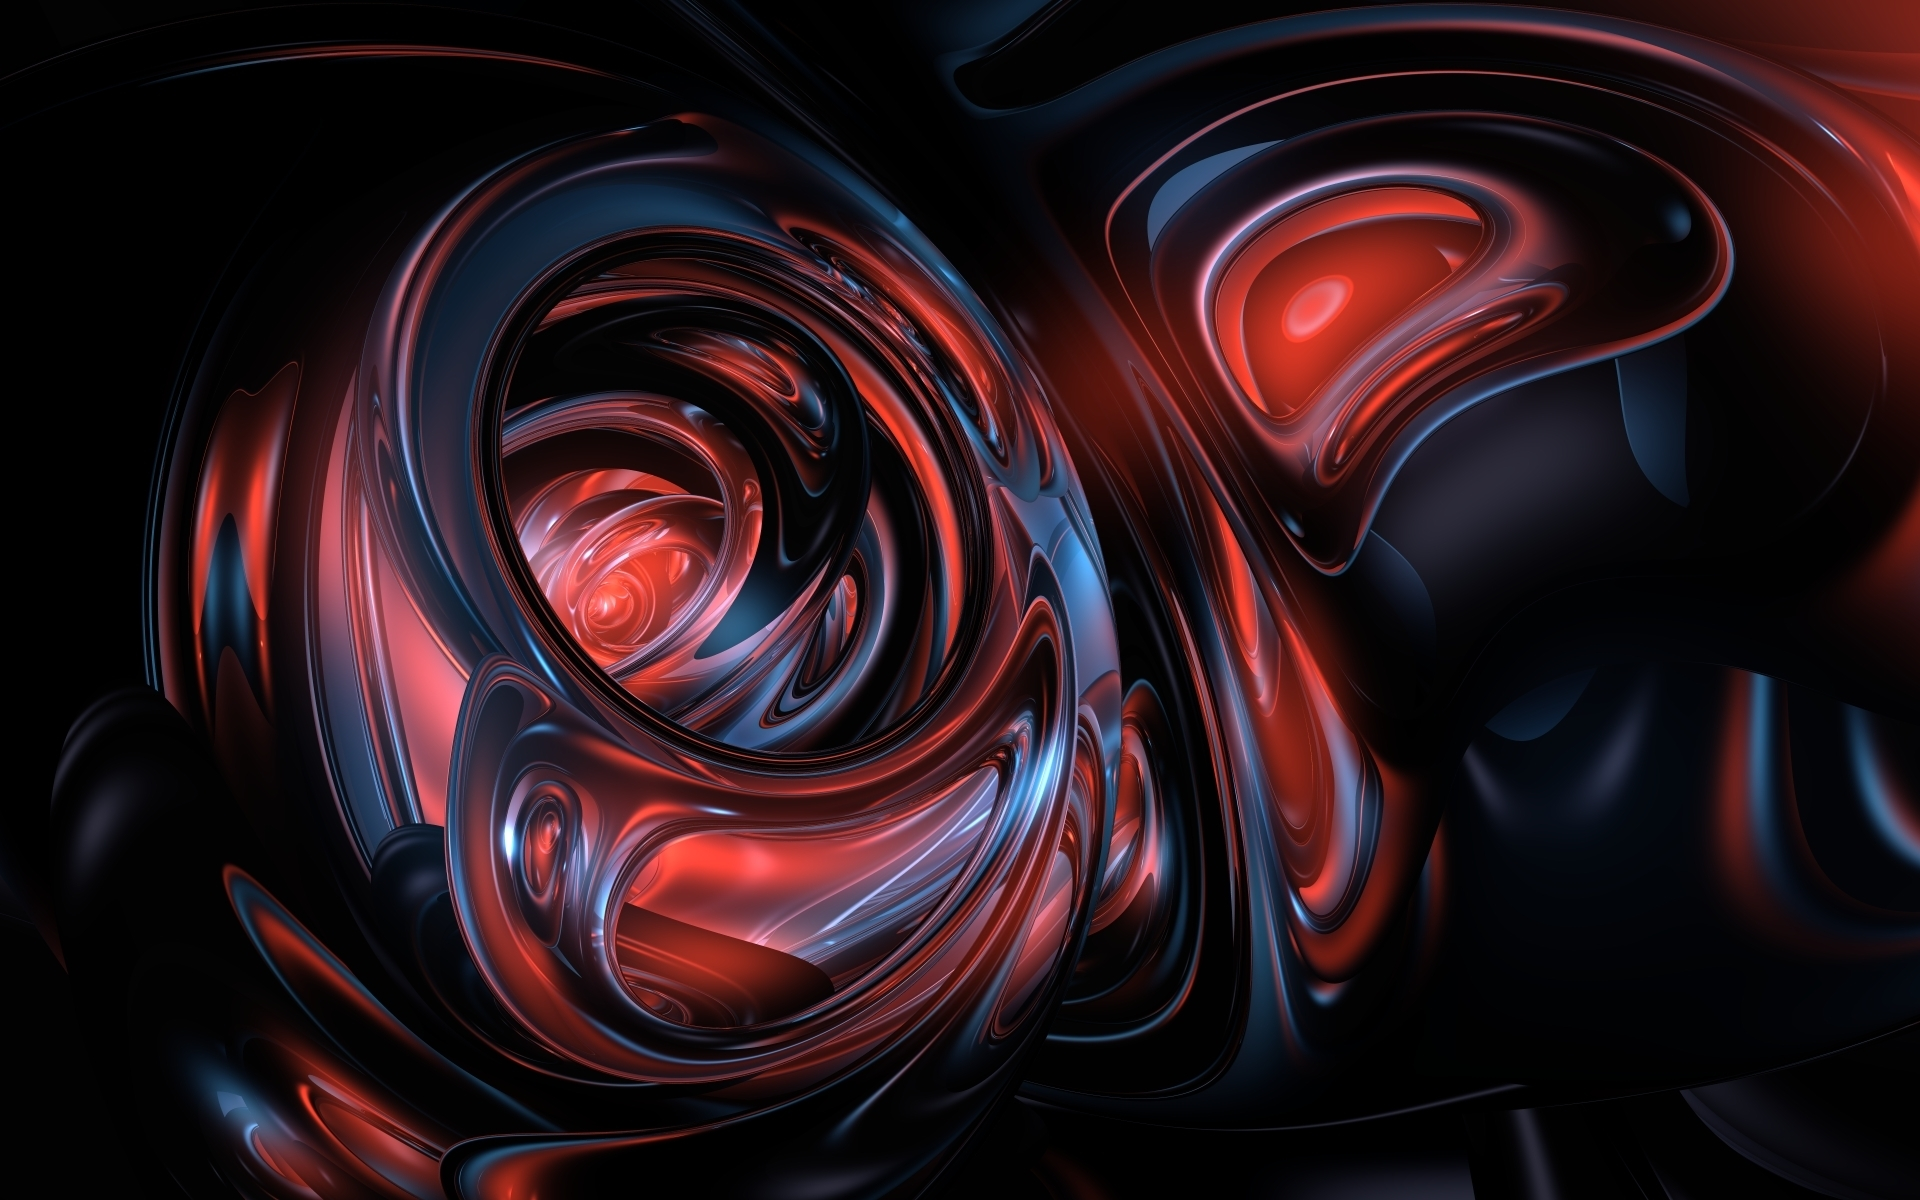 27497 Wallpapers and Background images on your desktop. Download Background, Abstract pictures on PC for free